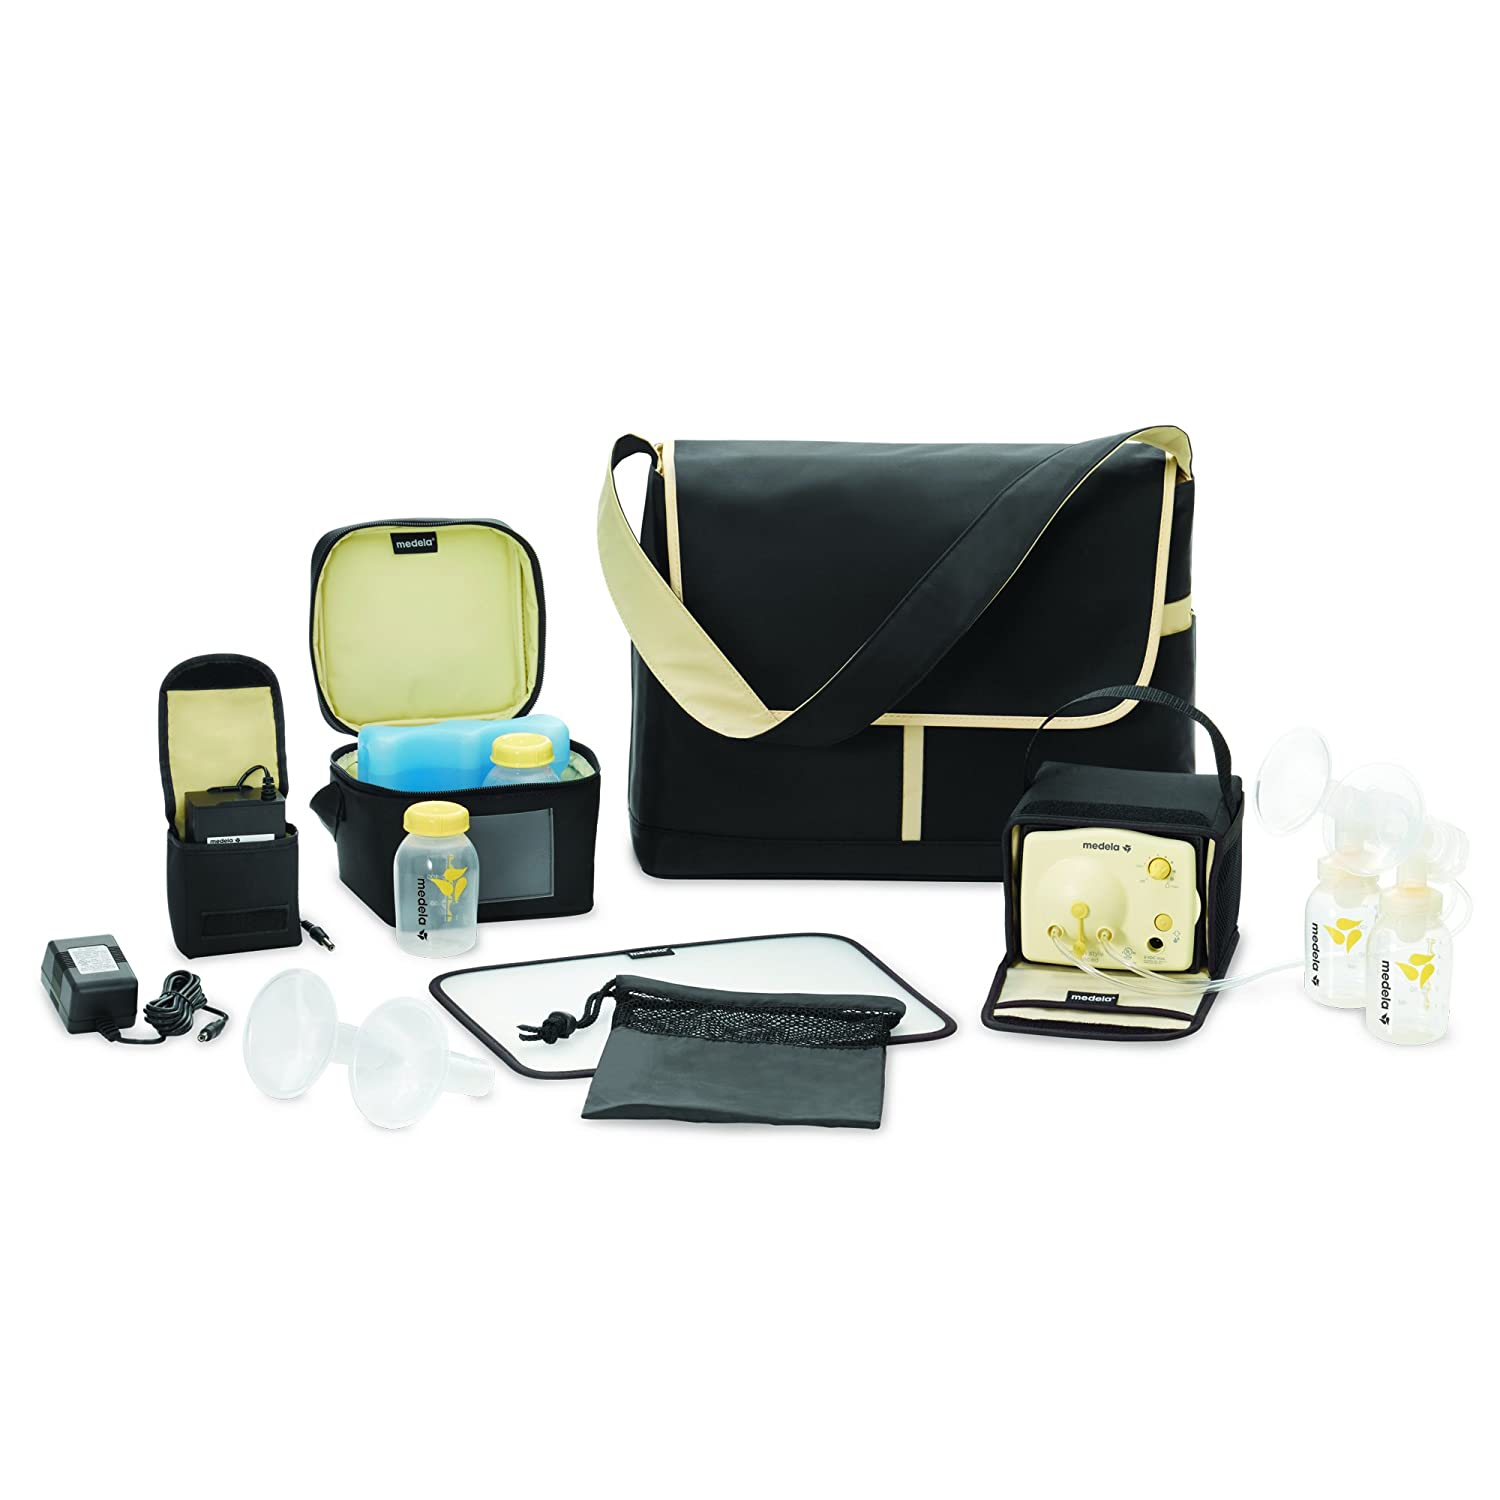 Medela Pump in Style Advanced Breast Pump, Double Electric Breast Pump Kit, Portable Battery Pack, Stylish Microfiber Messenger Bag, Removable Cooler, ...